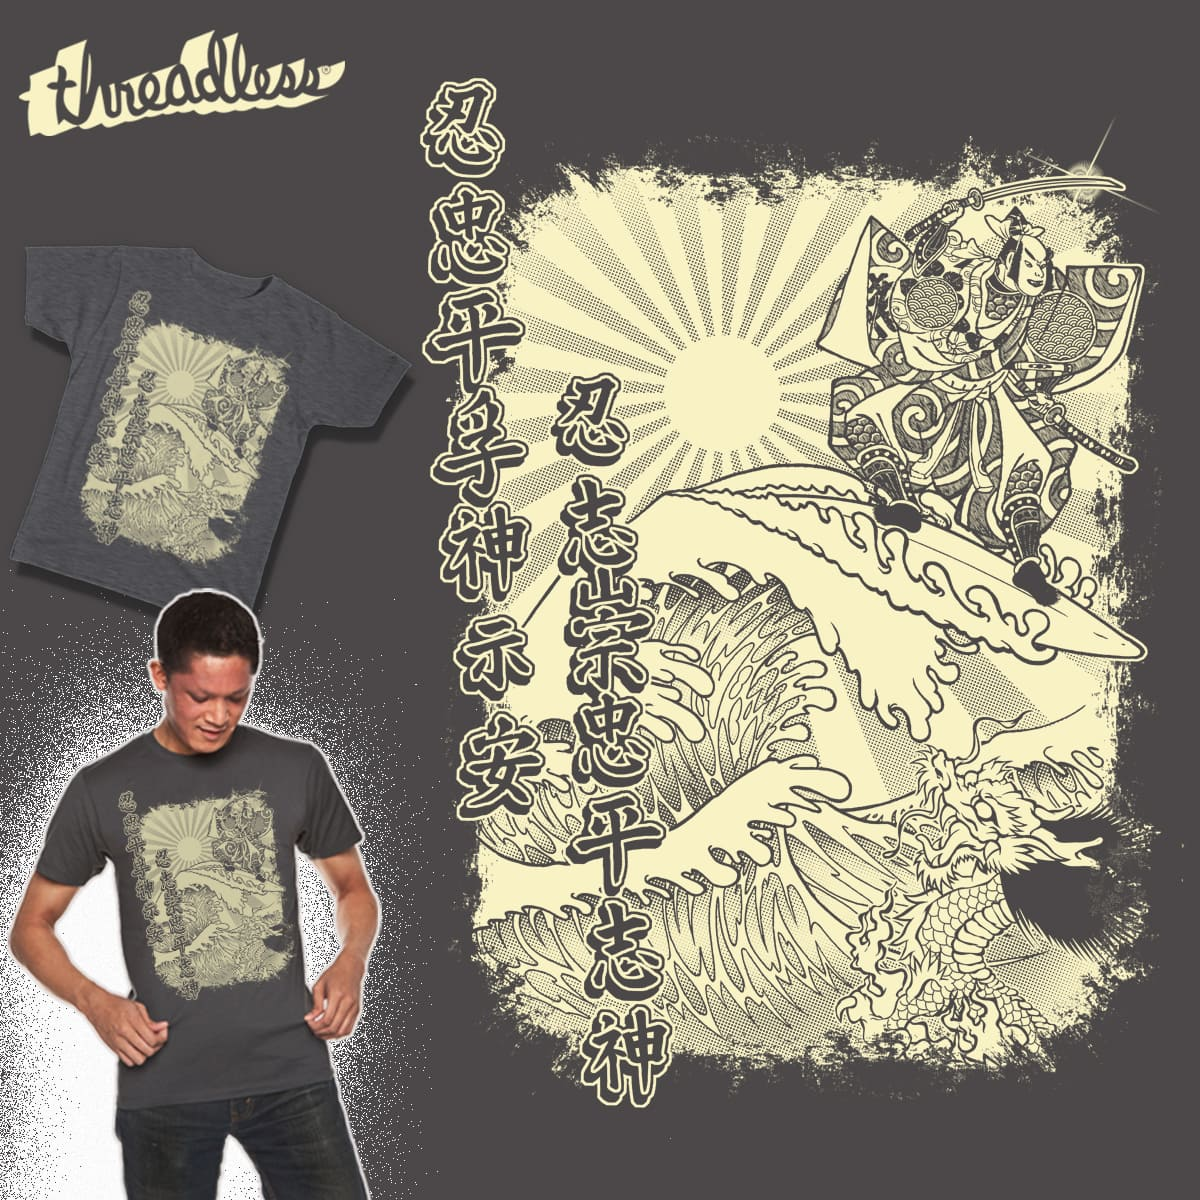 SAMURAI SURF by noctrnlcry on Threadless